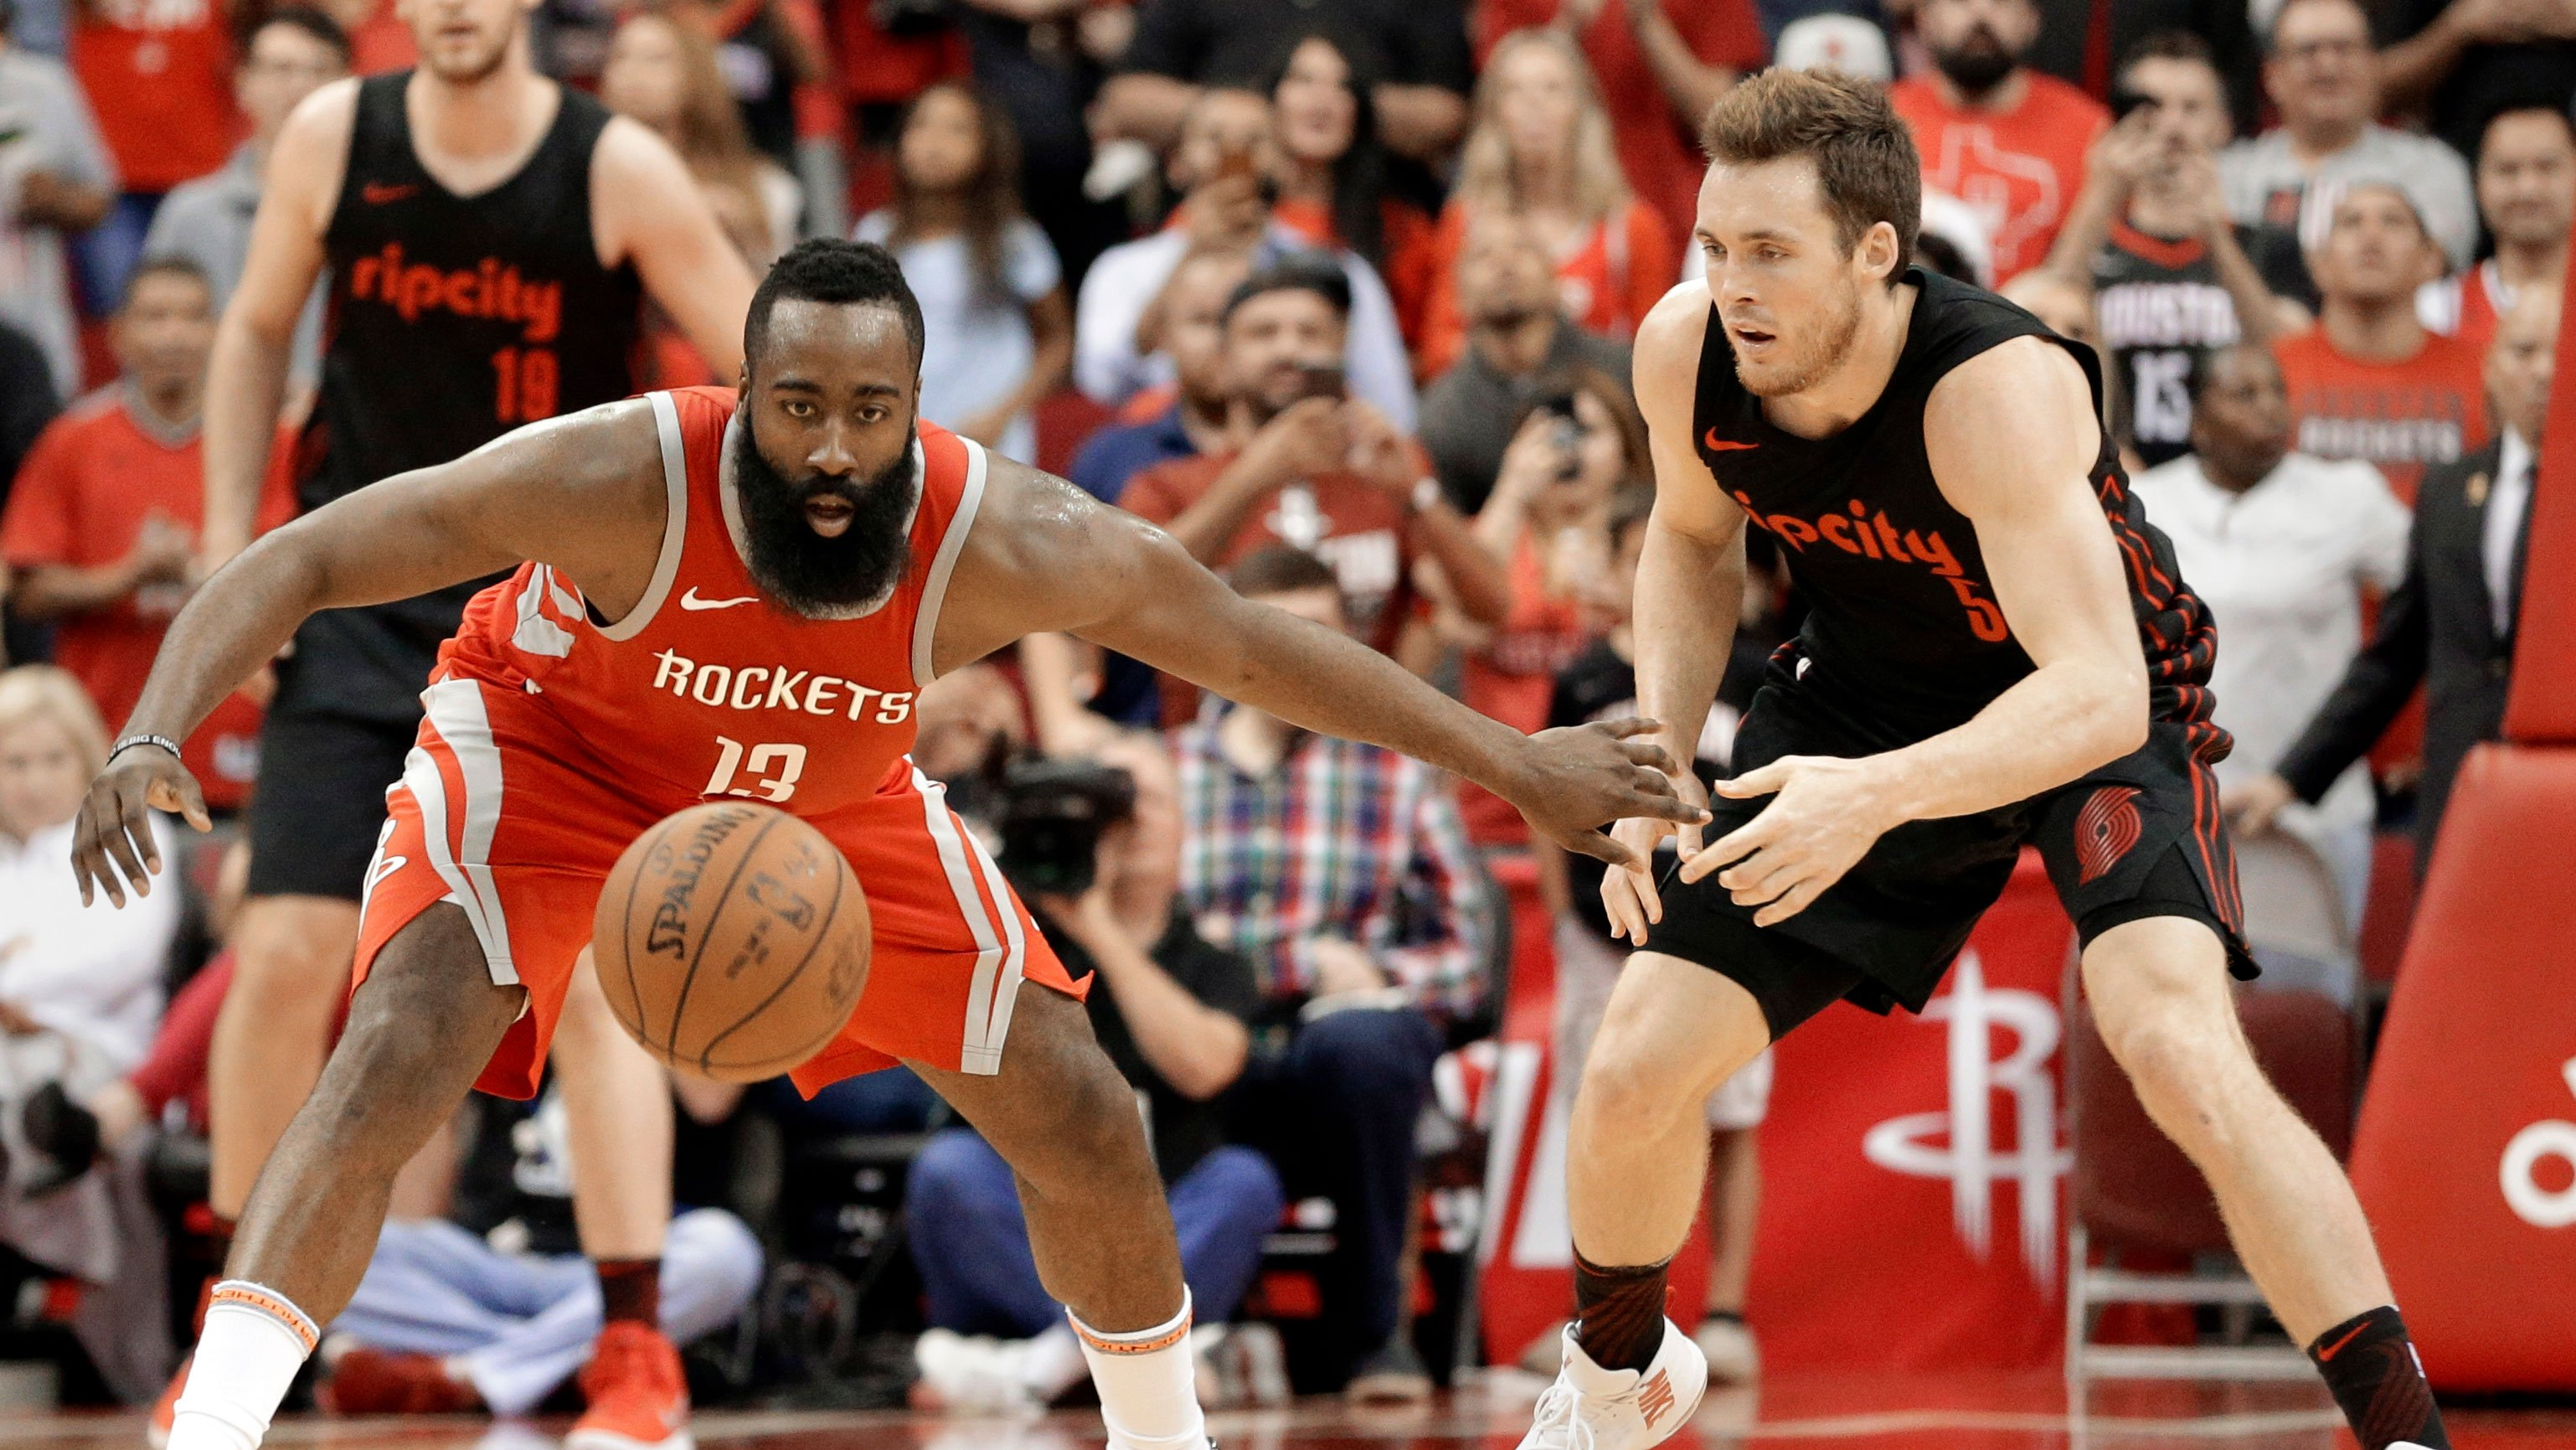 Houston Rockets guard James Harden (13) goes for the ball in front of Portland Trail Blazers guard Pat Connaughton (5) during the second half of an NBA basketball game Thursday, April 5, 2018, in Houston. (AP Photo/Michael Wyke)